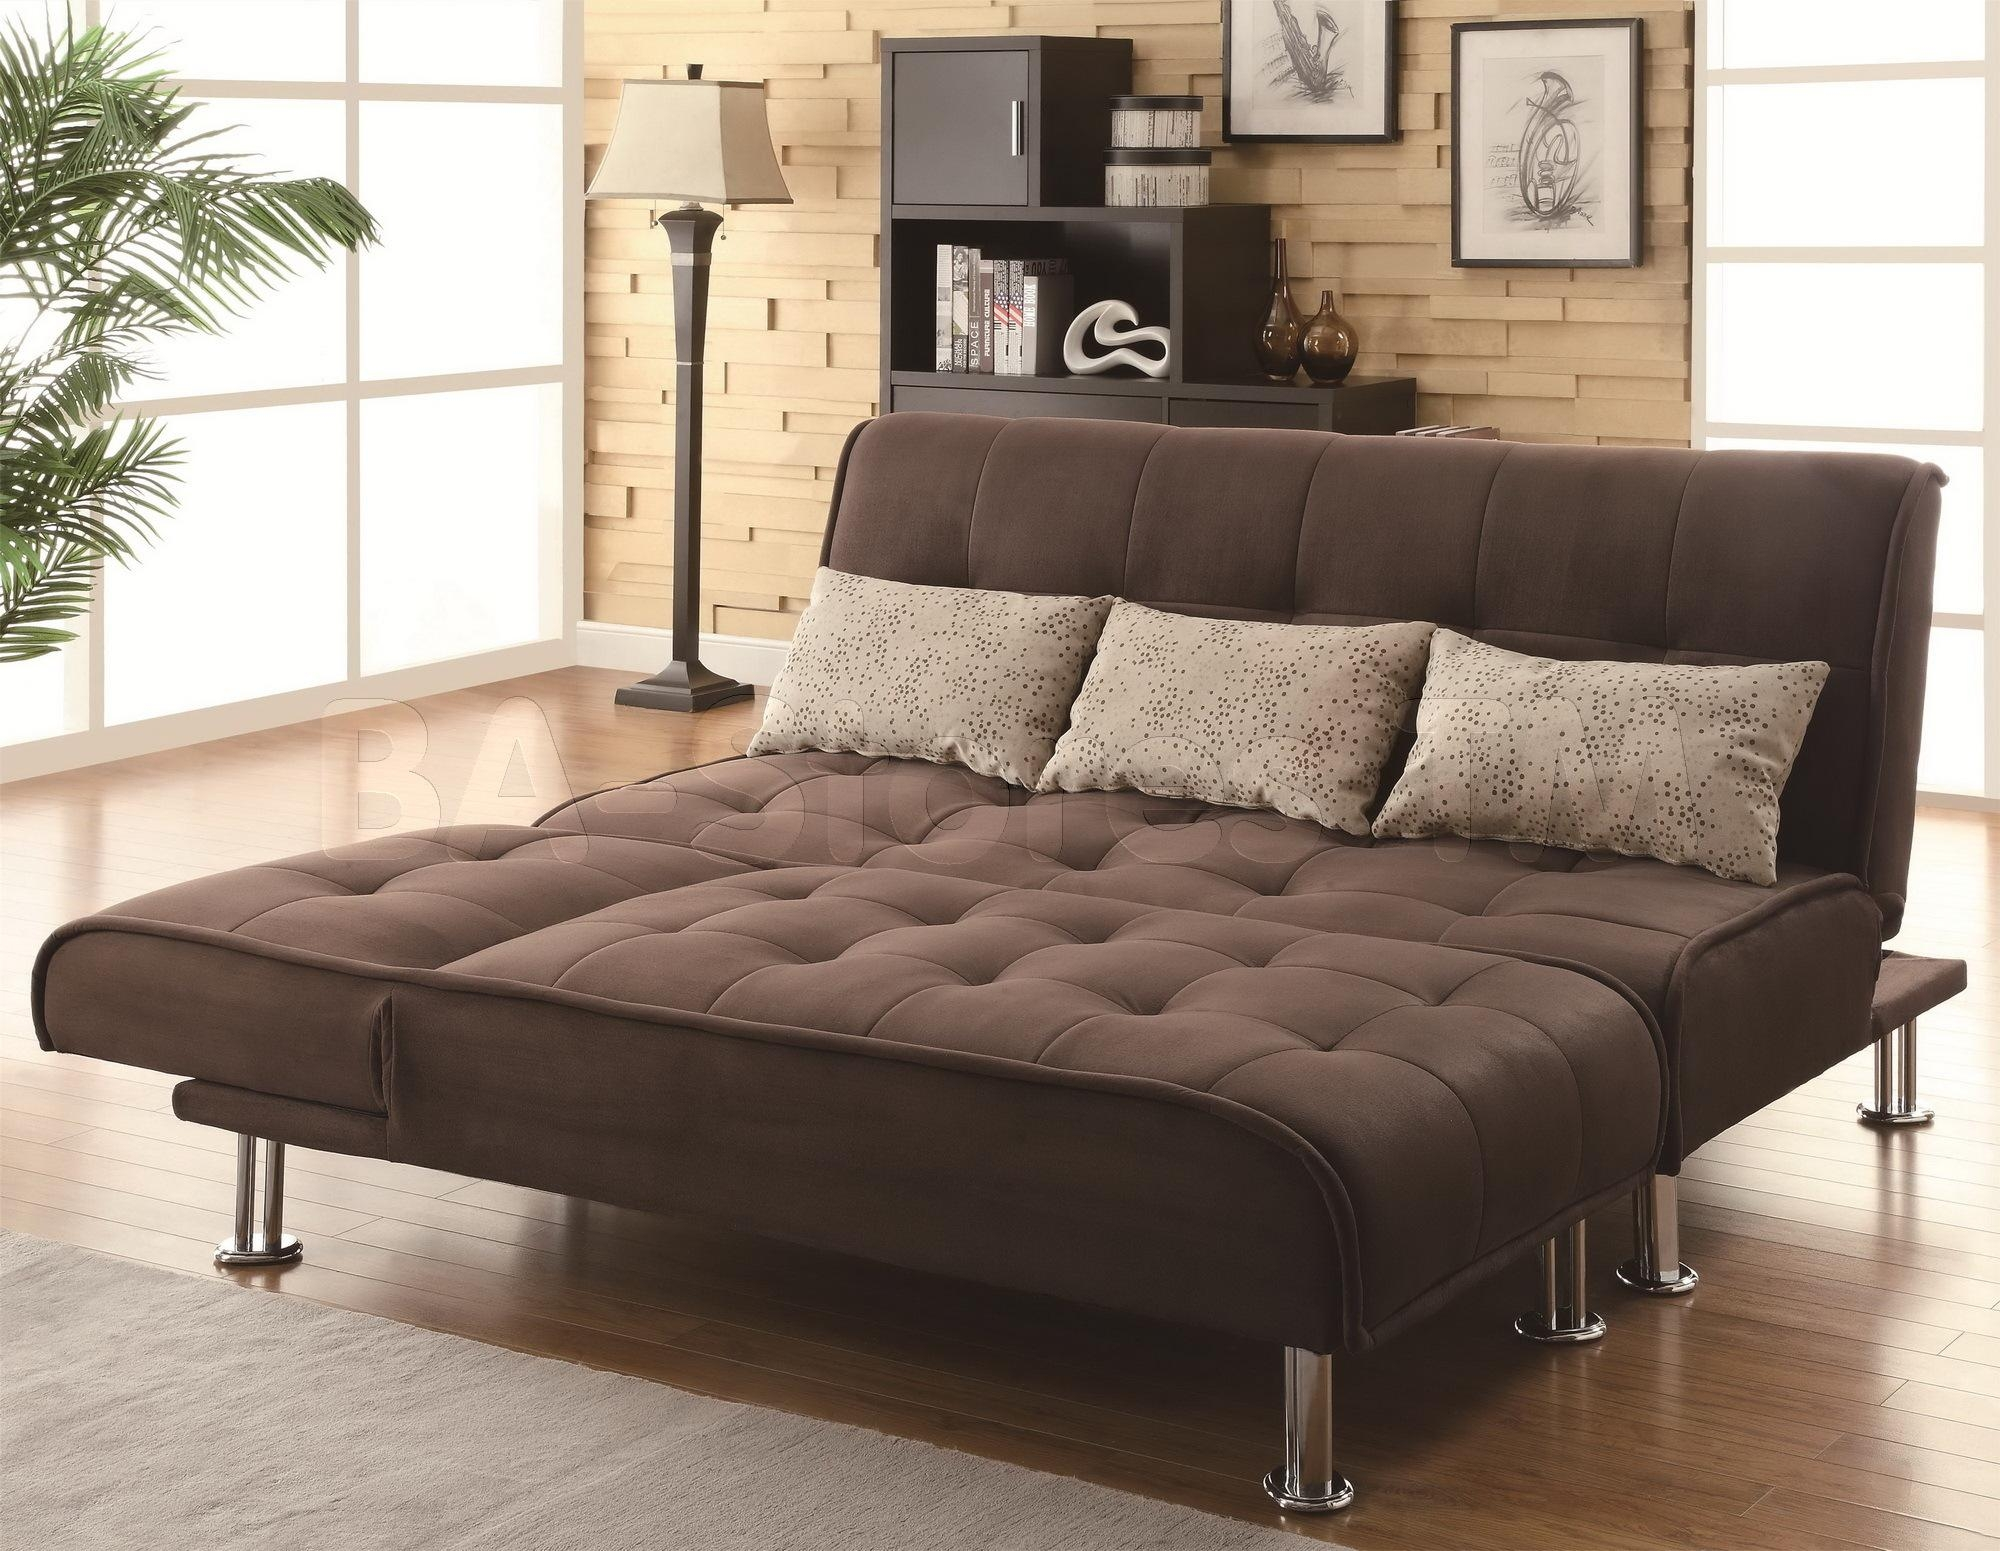 Furniture: Comfortable Tempurpedic Sofa Bed For Cozy Living Room In Full Size Sofa Beds (View 7 of 20)